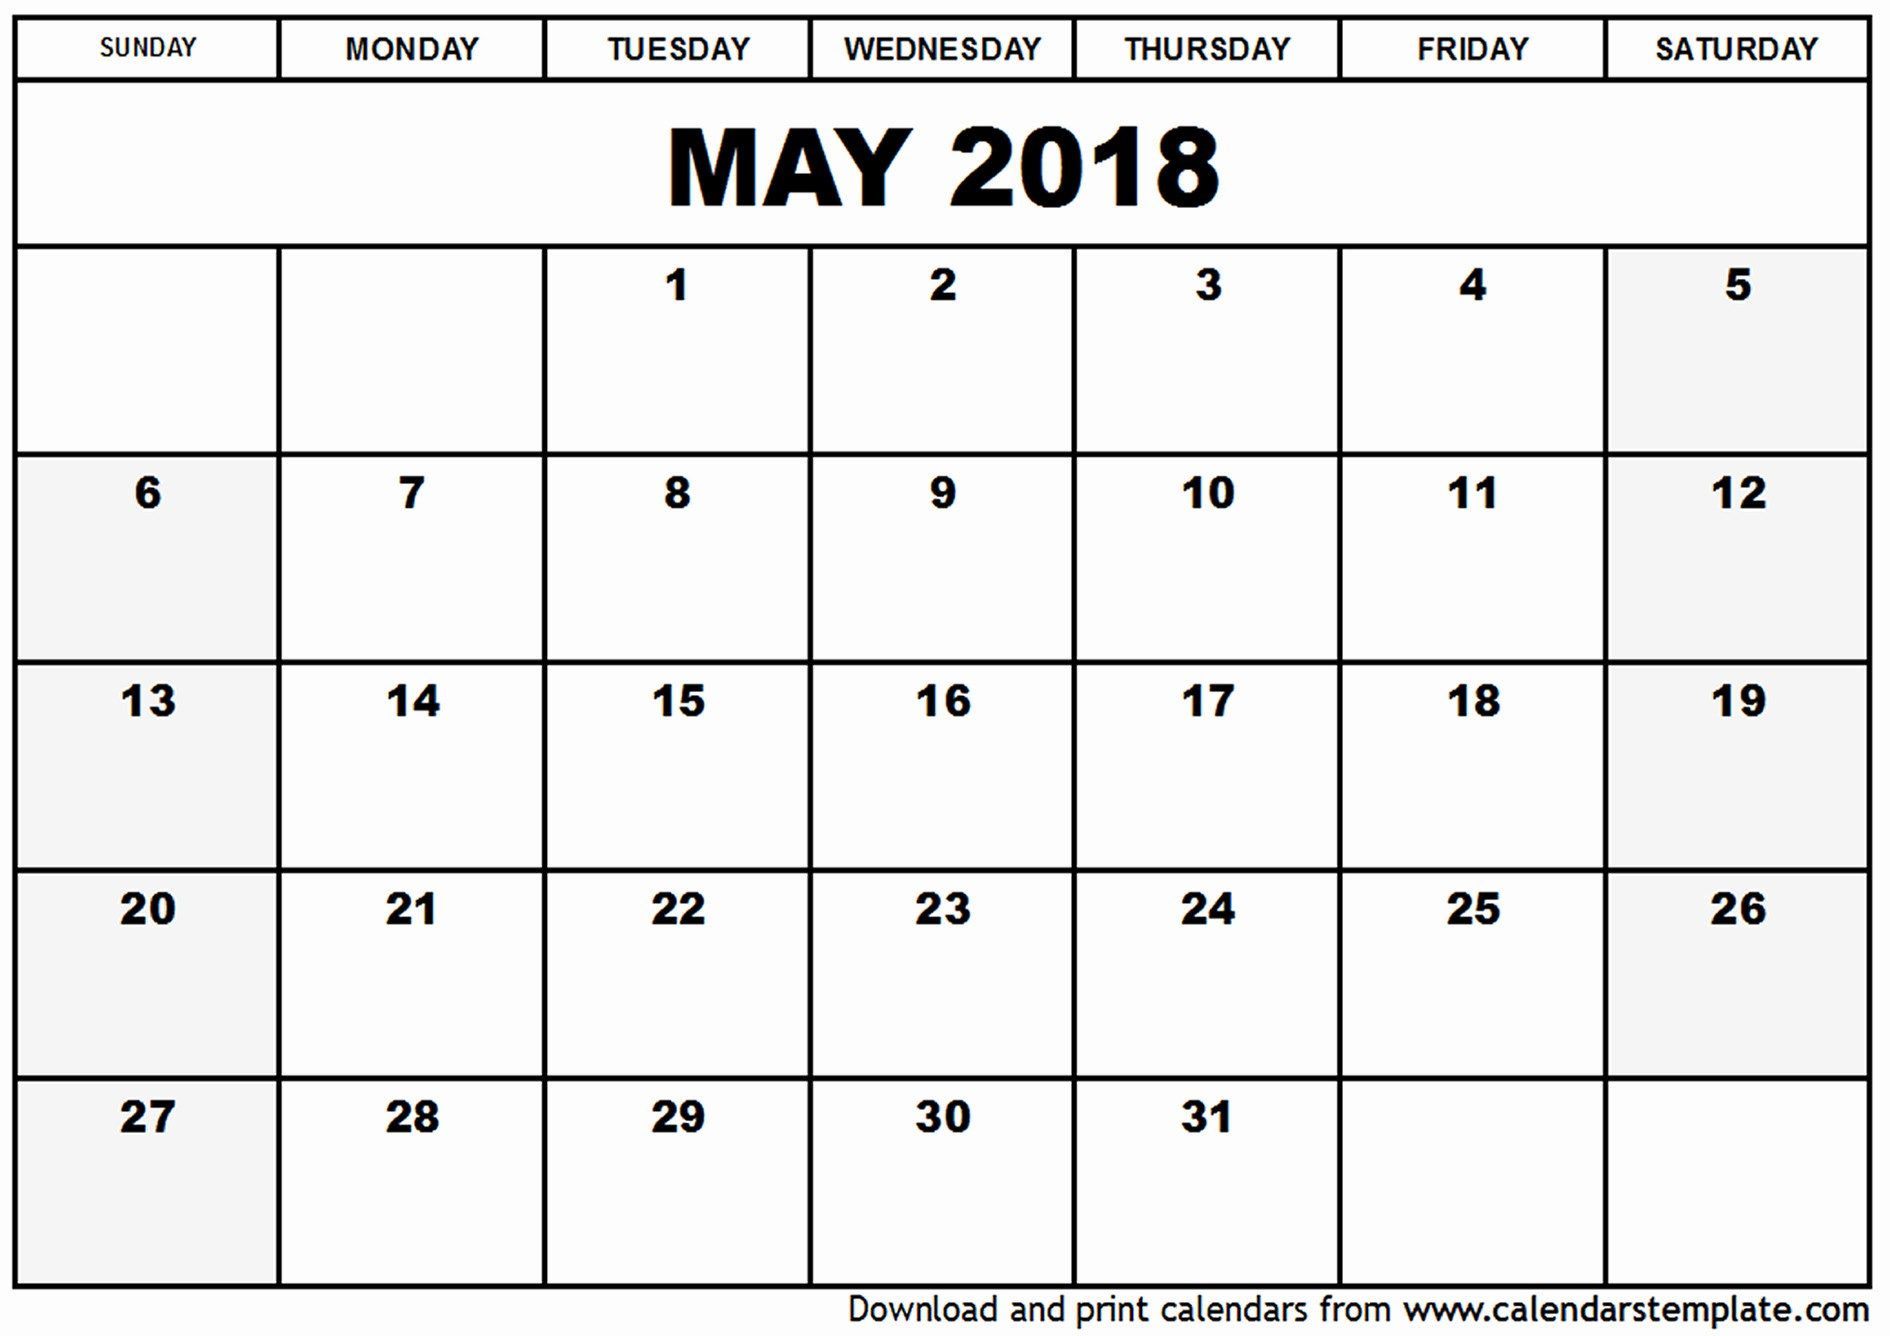 Free May 2018 Calendar Template Fresh May 2018 Calendar Template